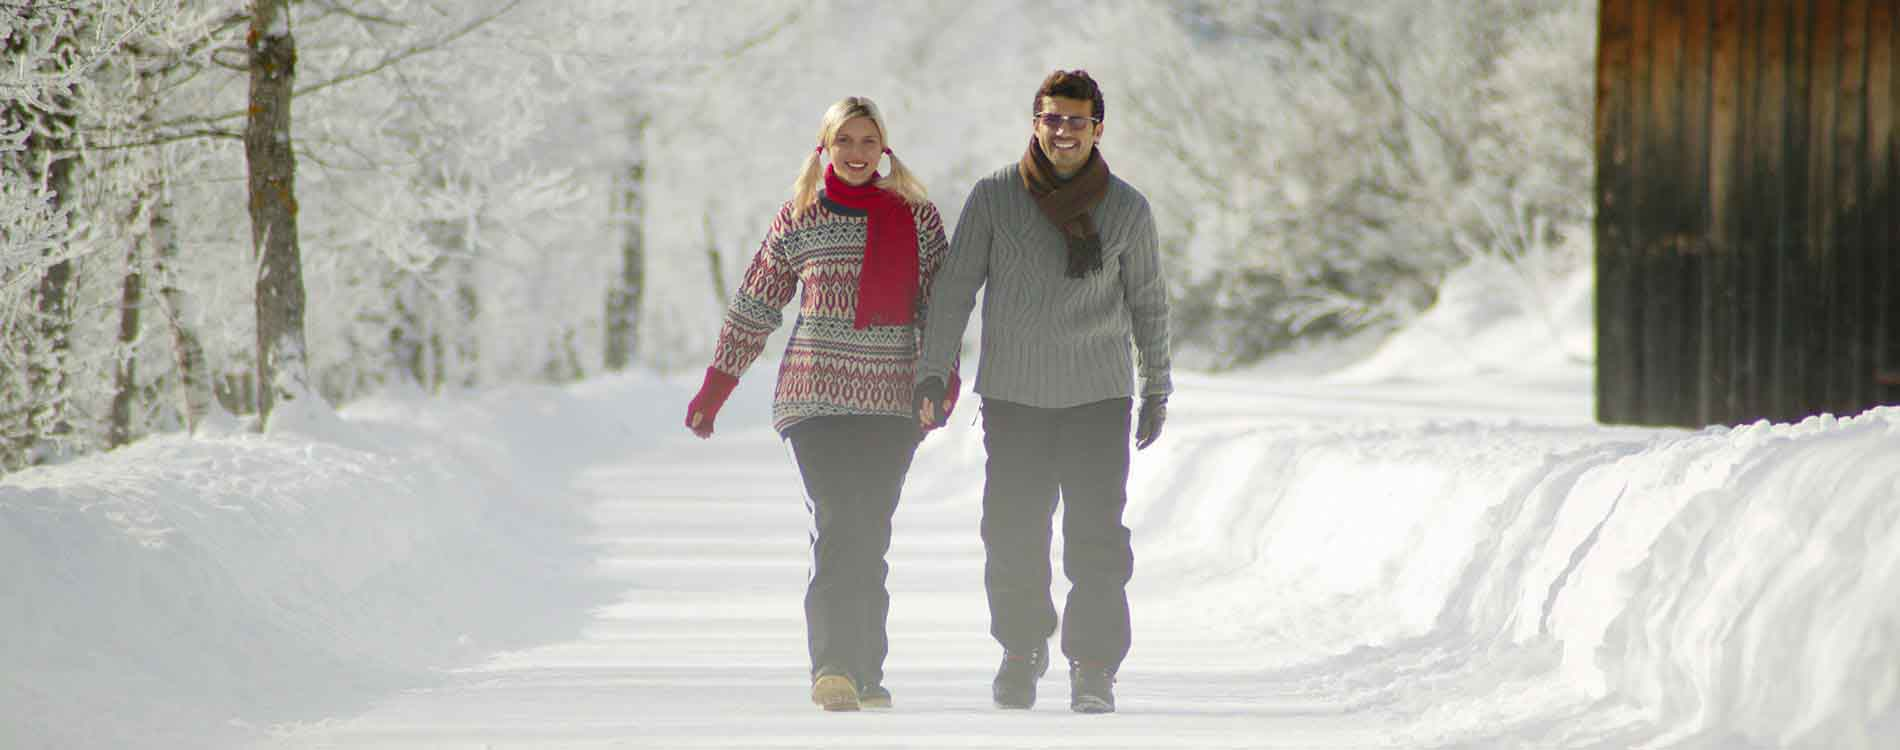 Romance in a winter wonderland Singer Sporthotel & SPA Berwang